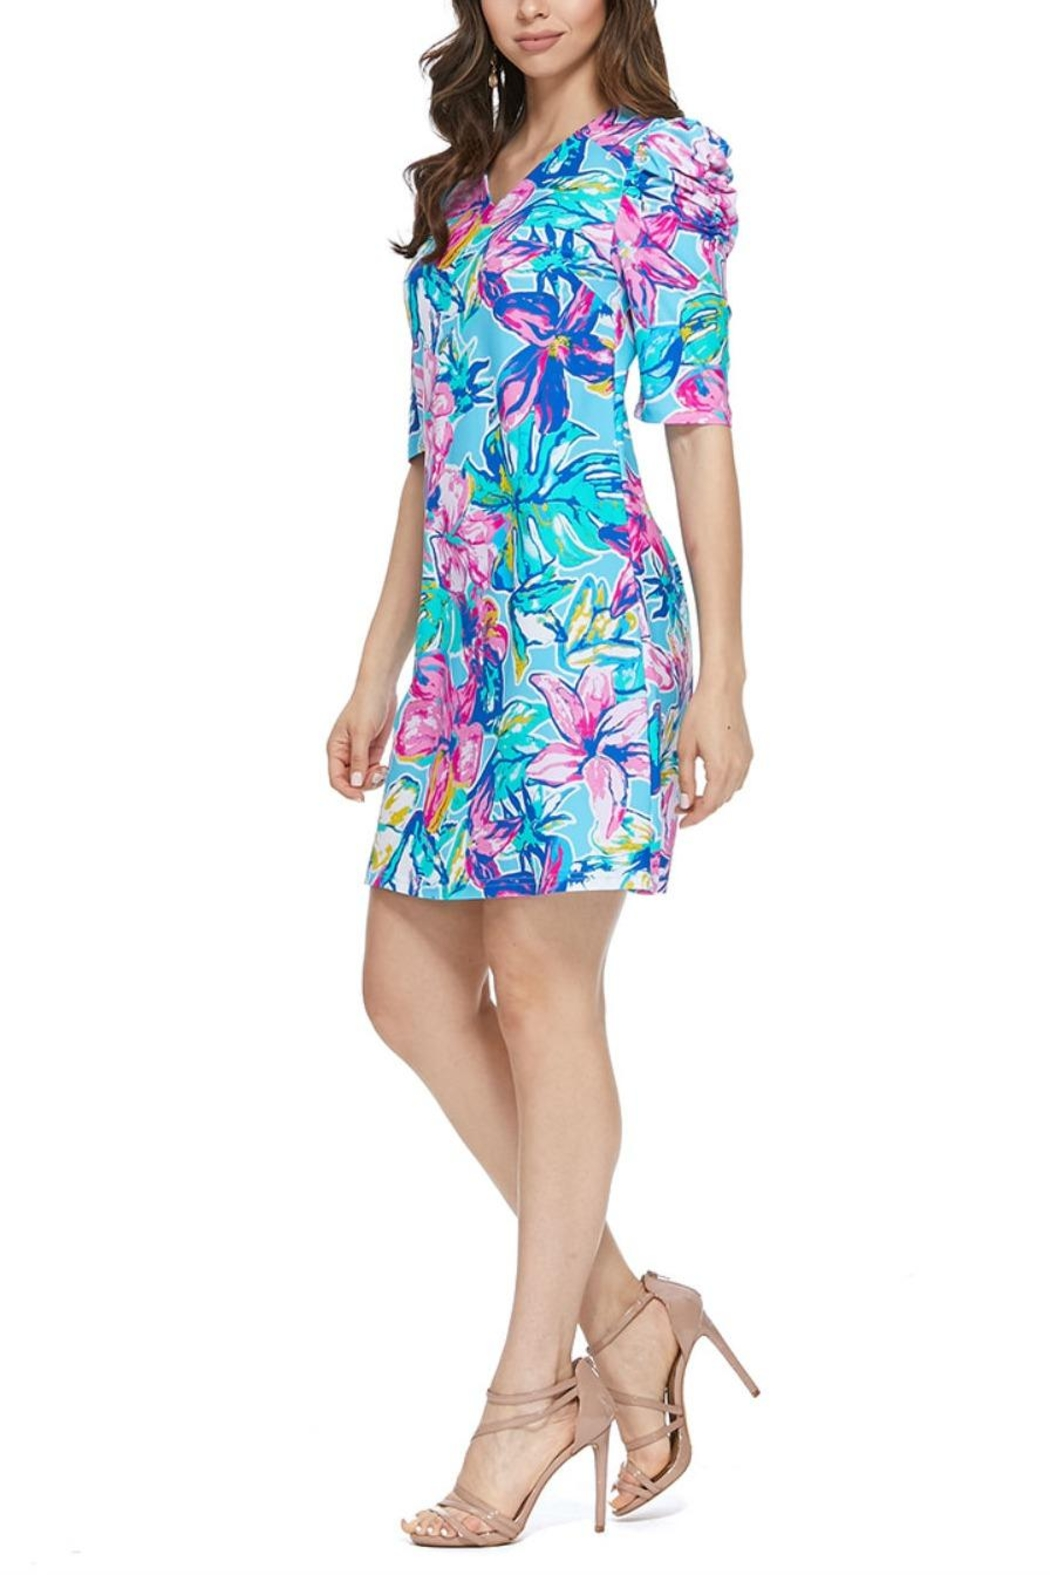 Aryeh Sky Puffy Shoulder Floral Dress - Side Cropped Image